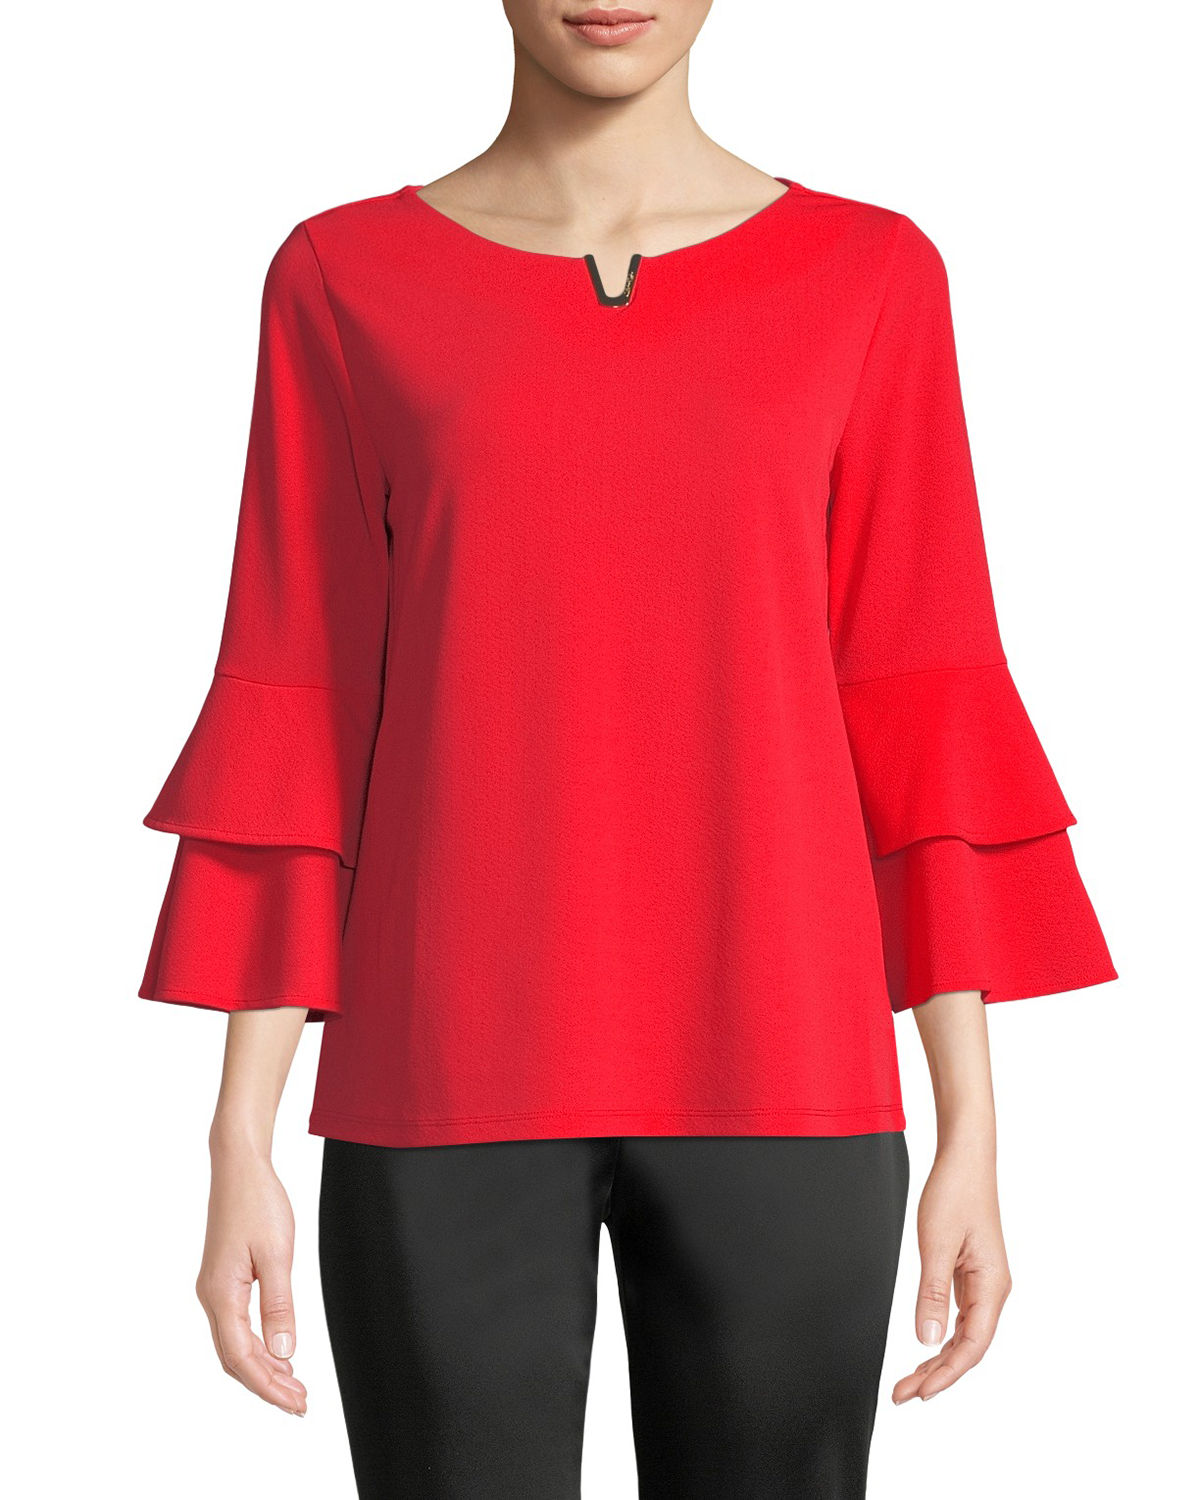 Notch-Neck Casual Top with Ruffled Cuffs